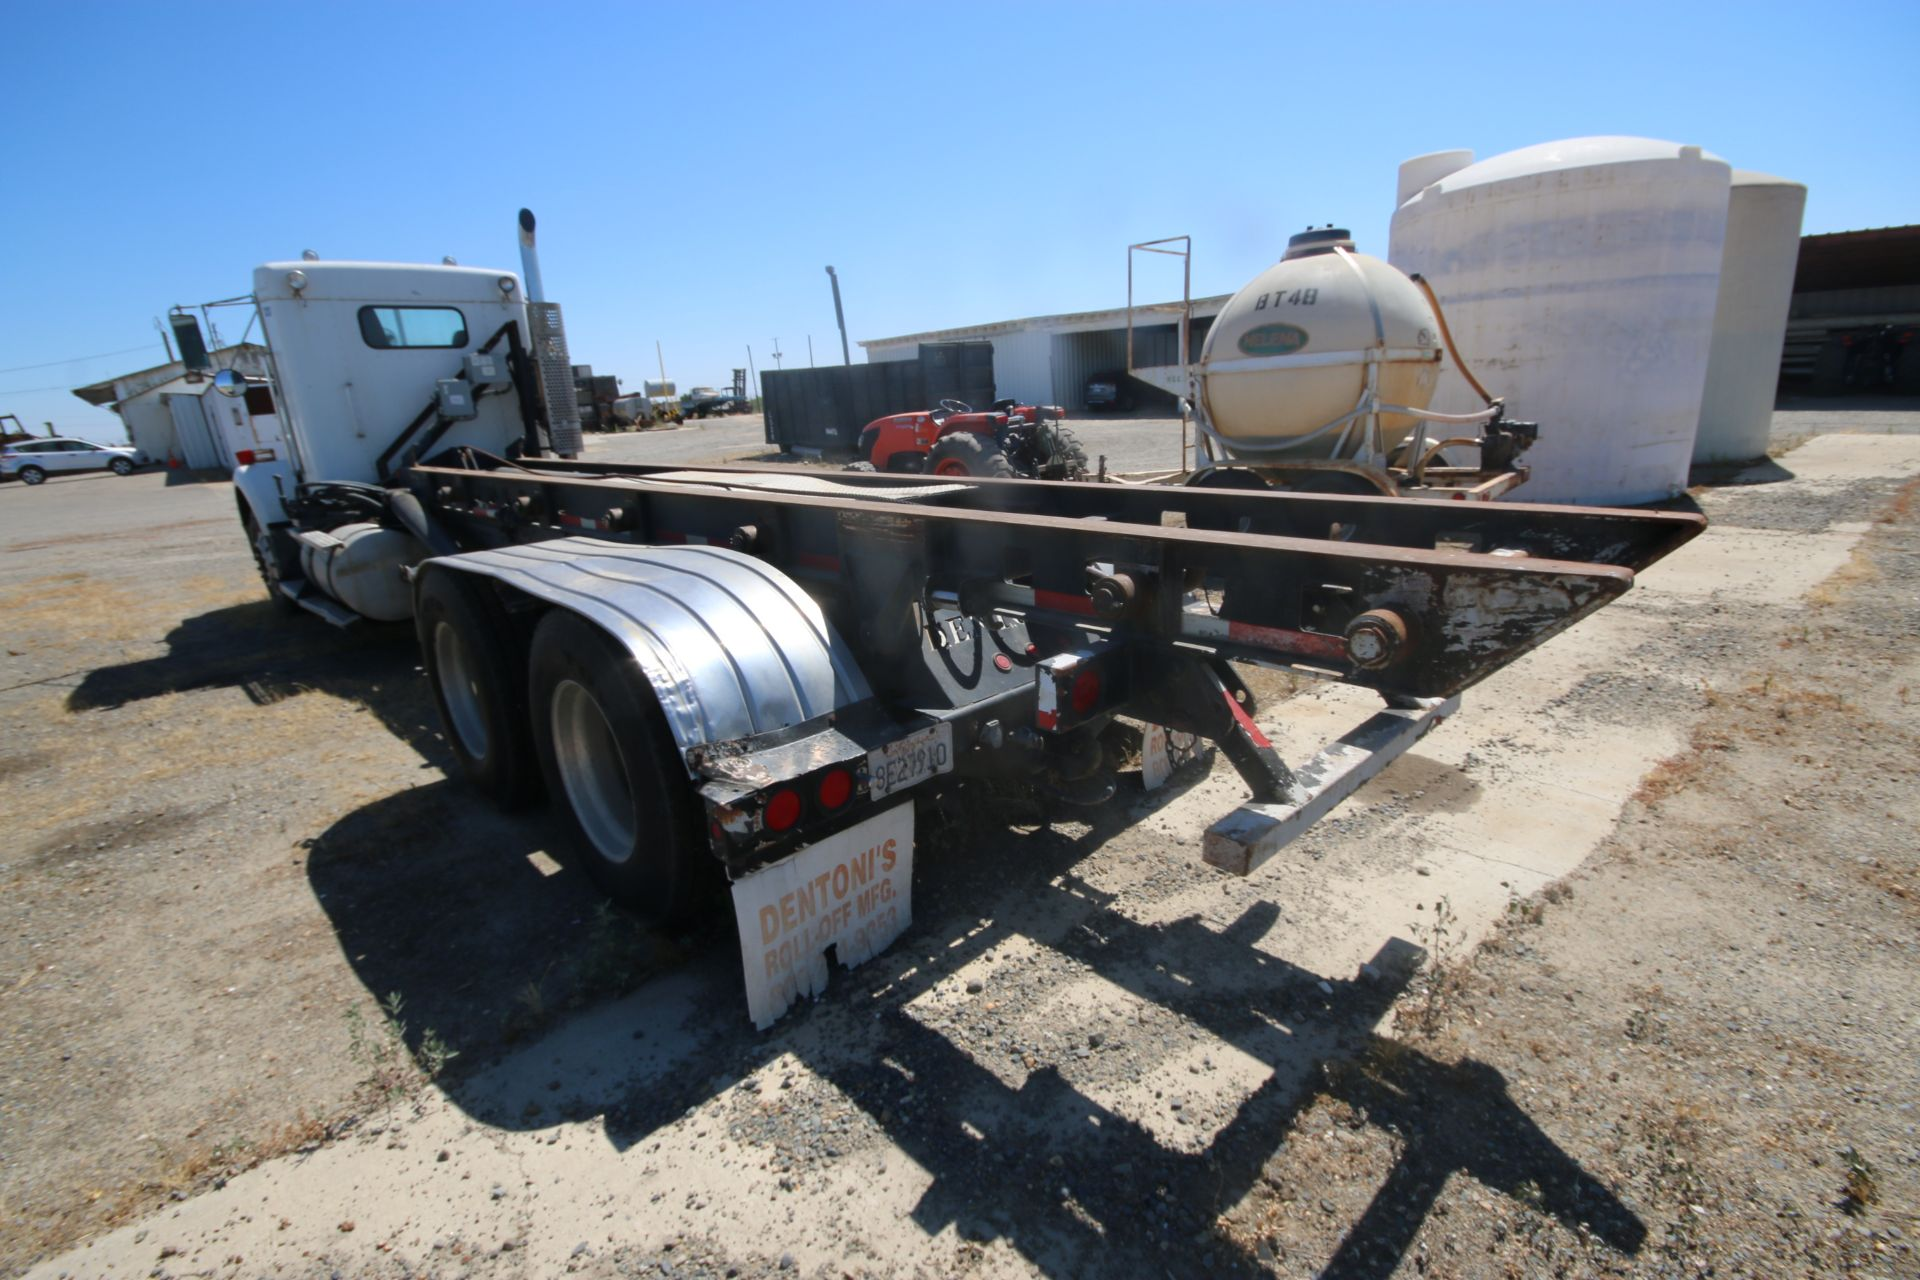 1996 Kenworth 3-Axle Roll-Off Straight Truck, VIN #: 1XKDDB9XOTS687107, with 24,722 Miles, License - Image 4 of 30